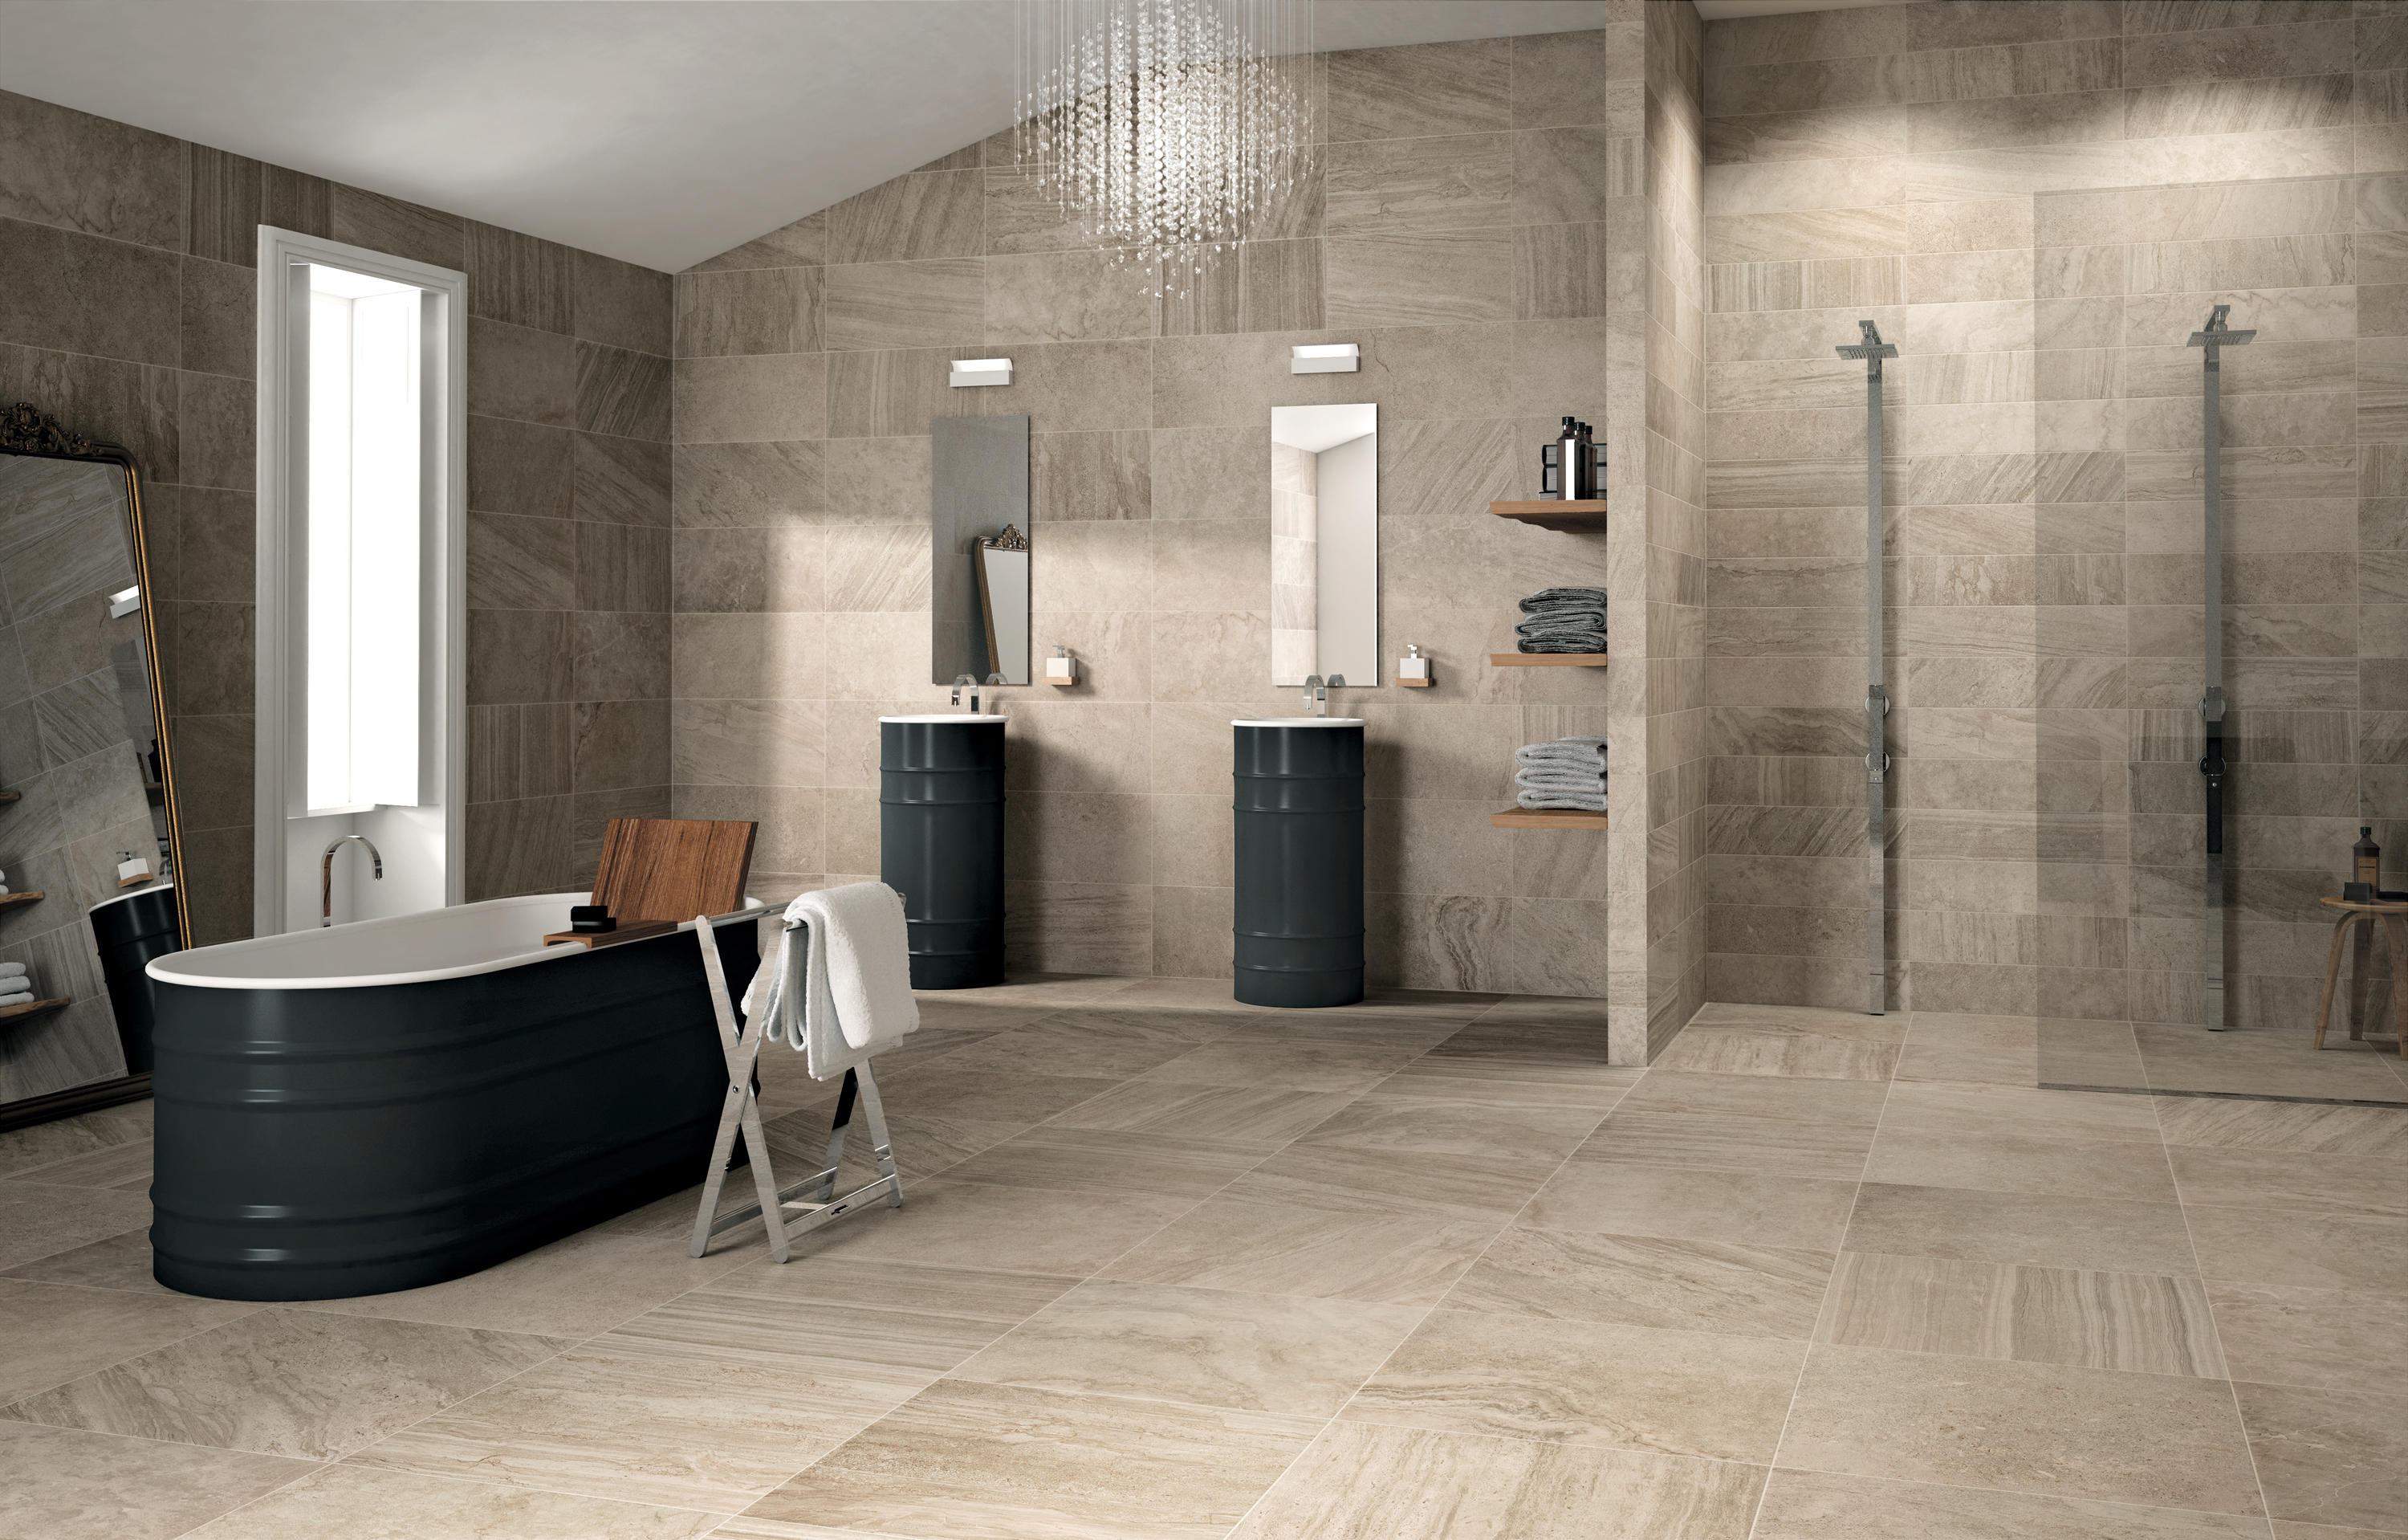 Shell oo 01 ceramic tiles from mirage architonic for Design del bagno